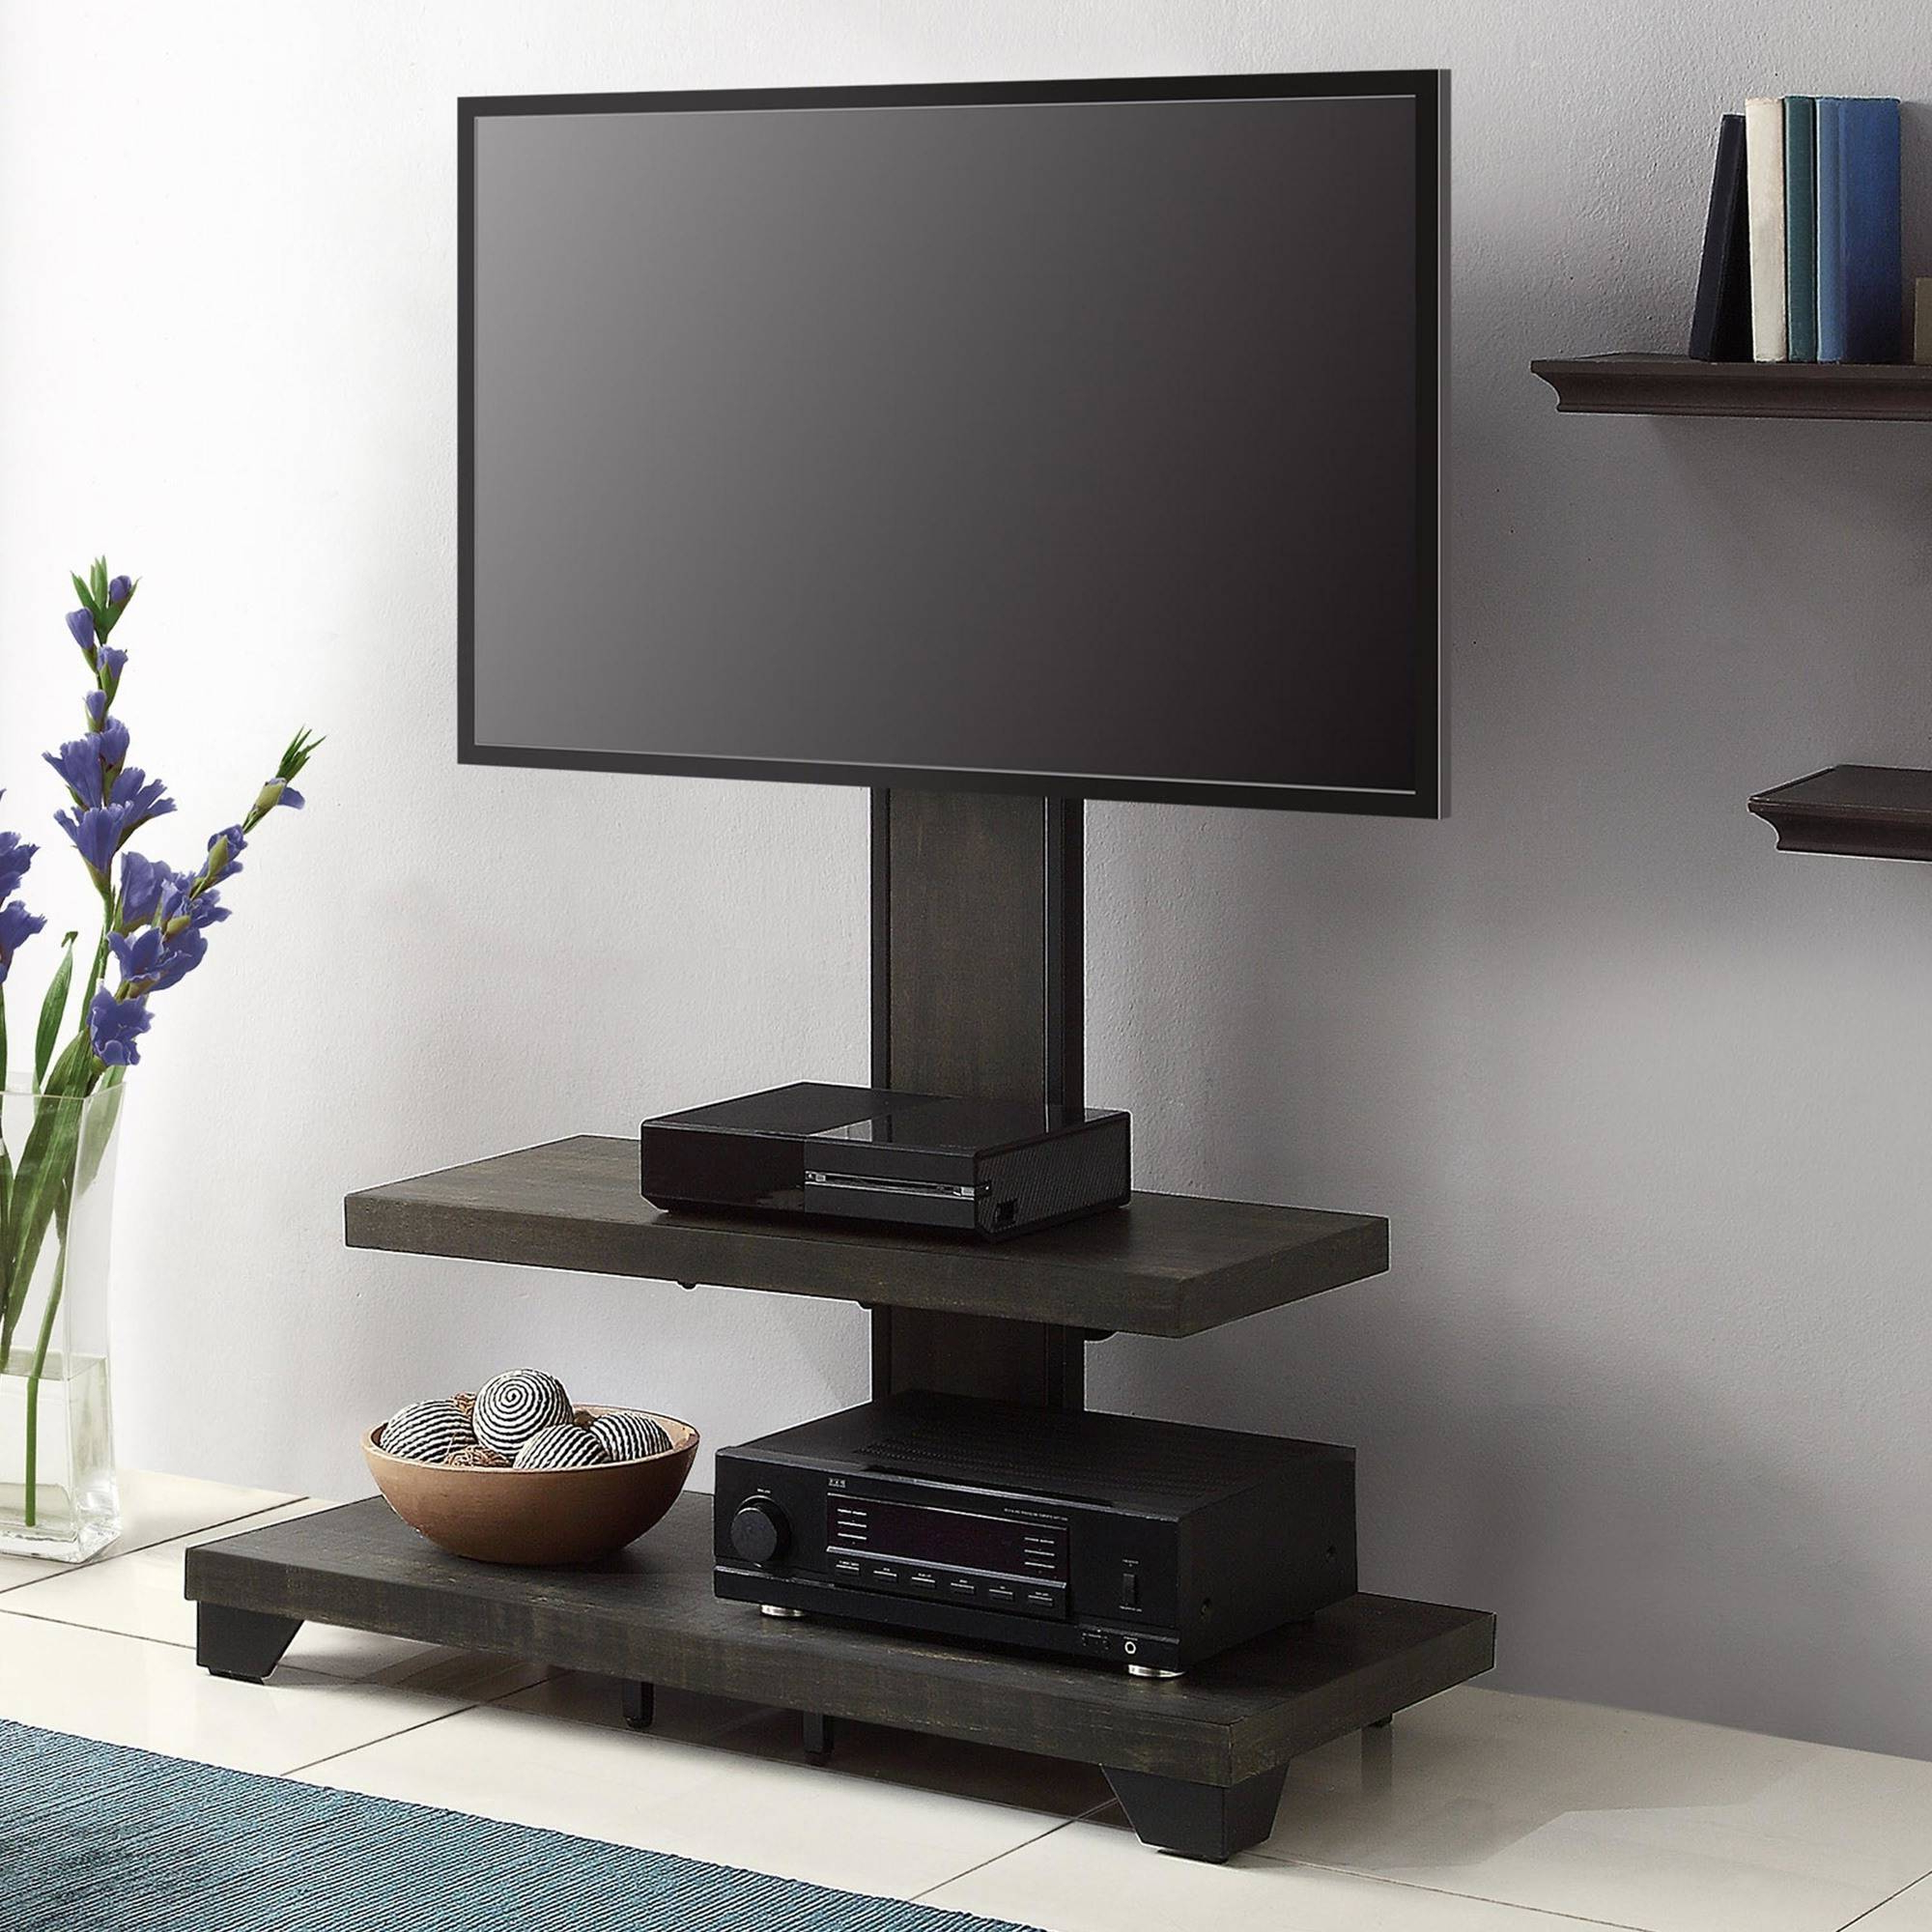 Tv Stand With Mount Swivel Fitueyes Floor For 32 60 Inches Best Regarding Vista 60 Inch Tv Stands (View 18 of 20)